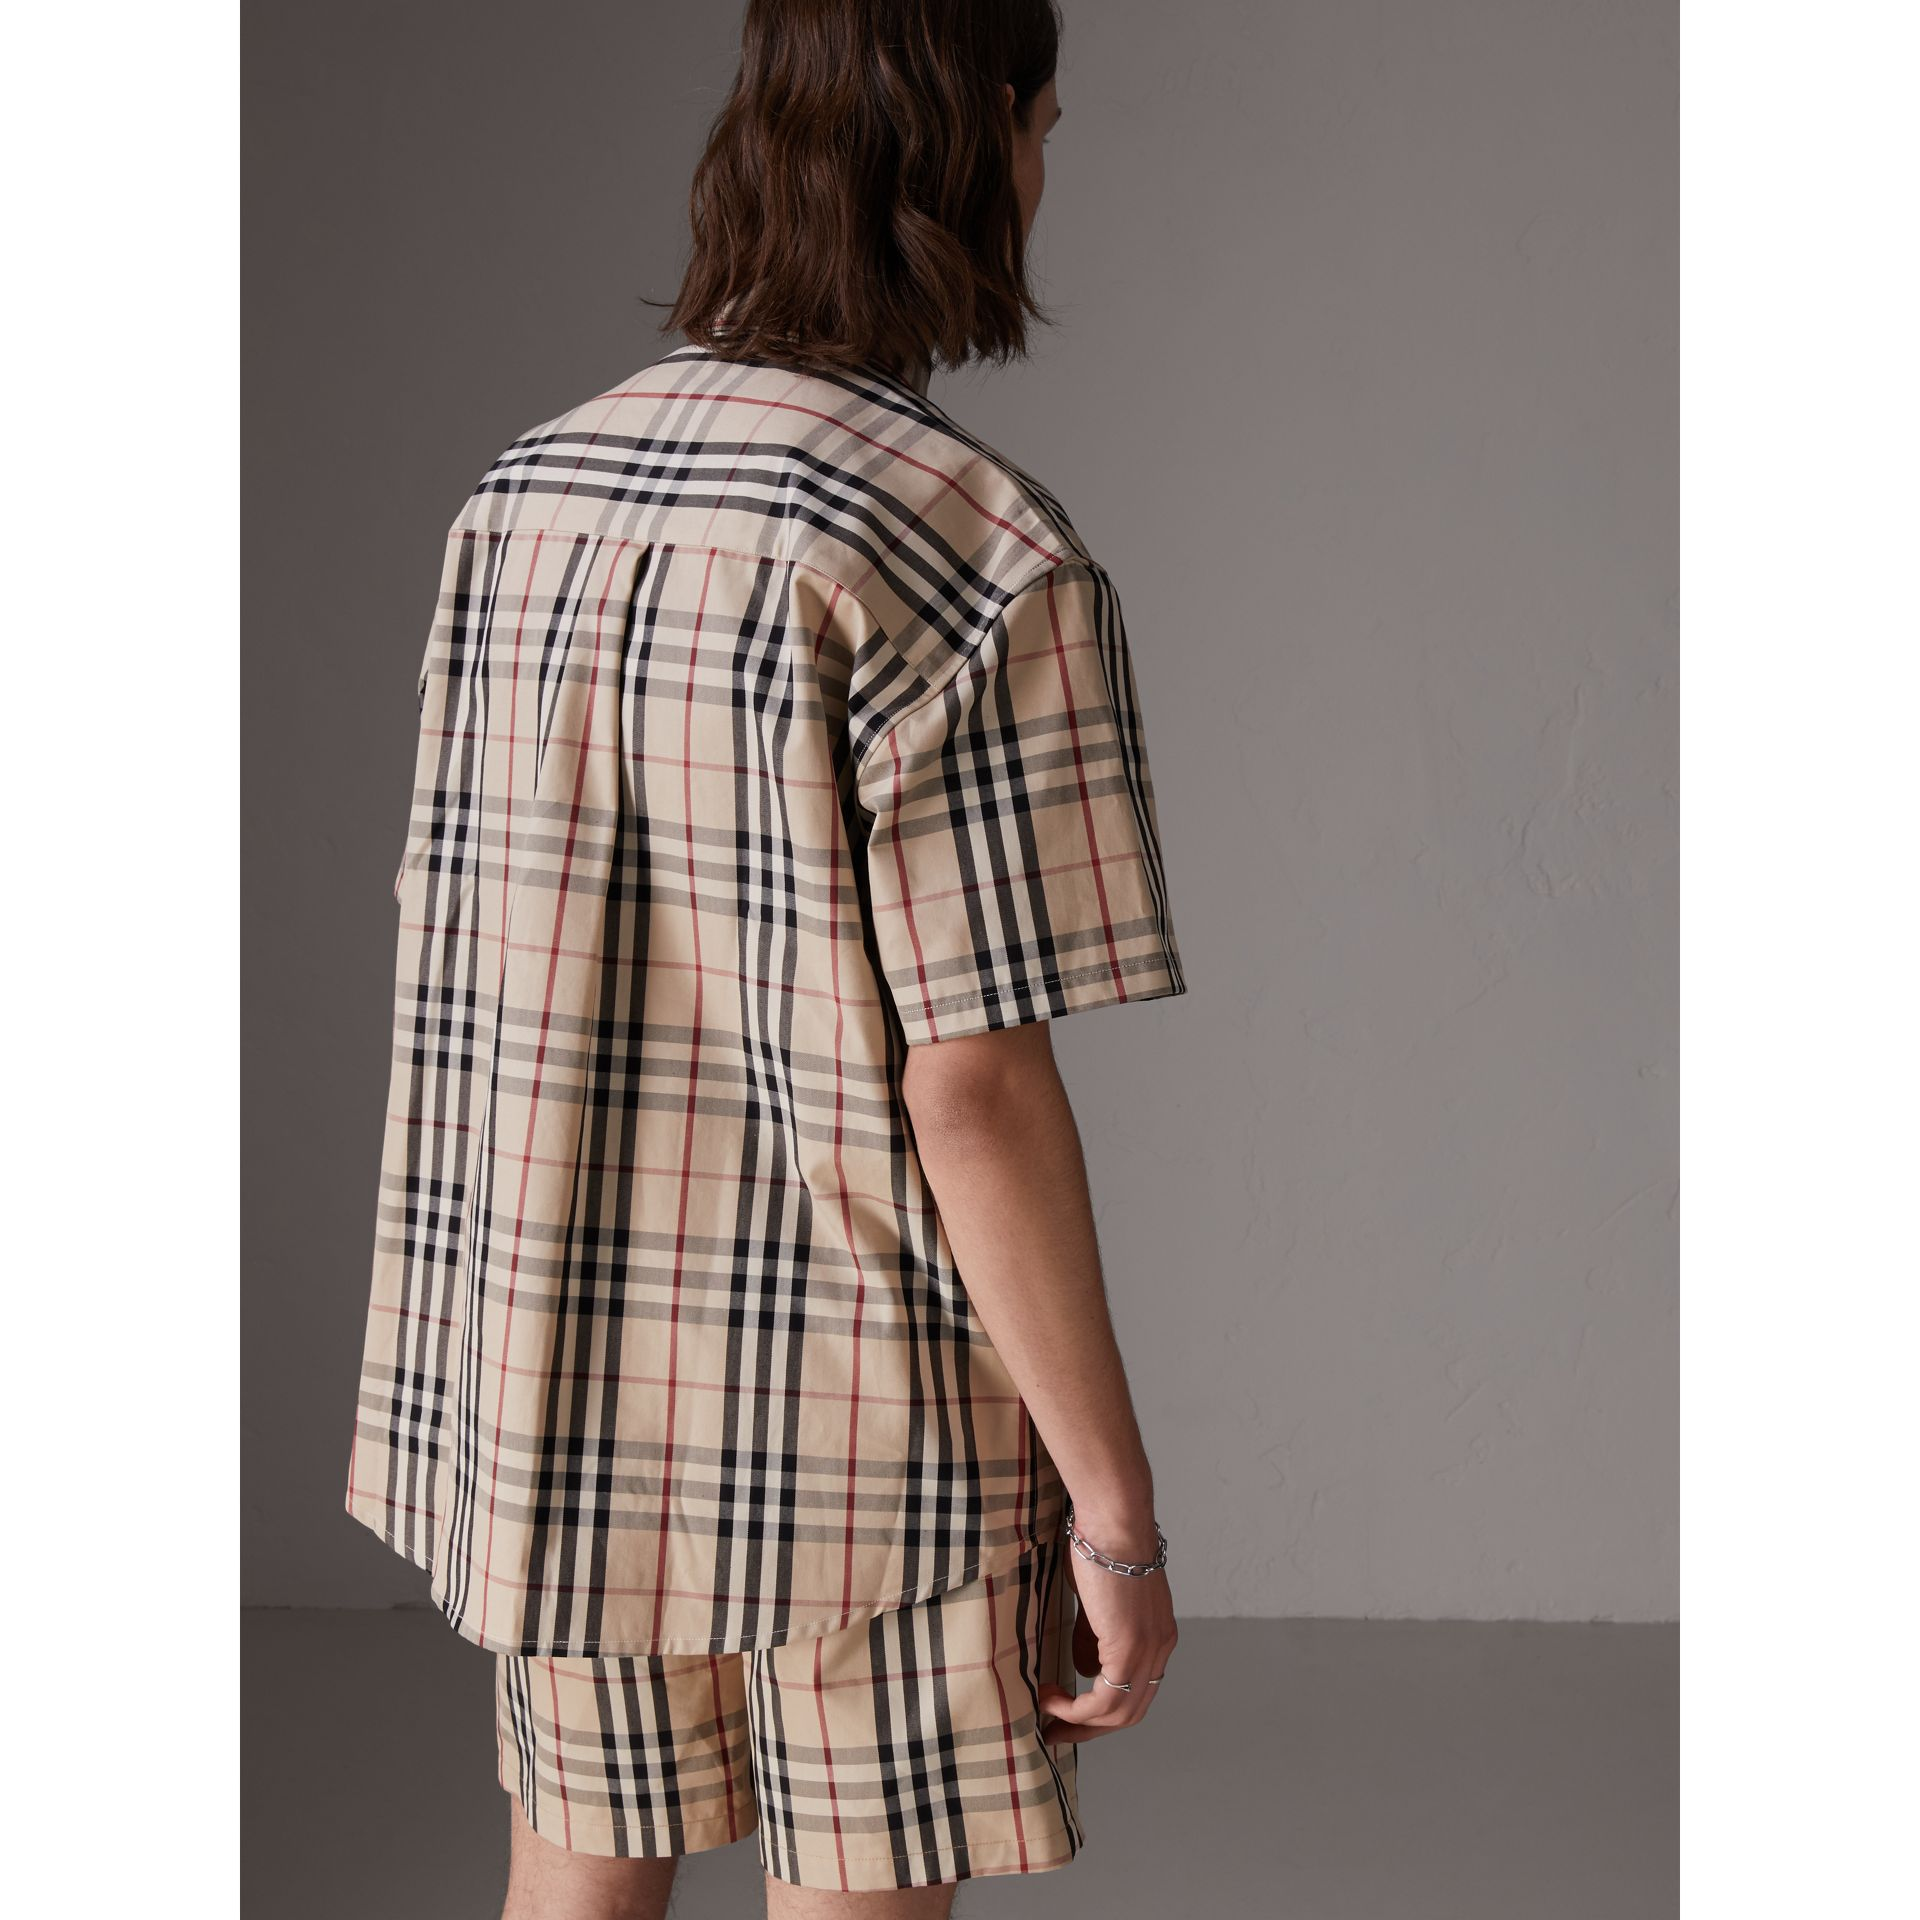 Gosha x Burberry Short-sleeve Check Shirt in Honey | Burberry Australia - gallery image 5